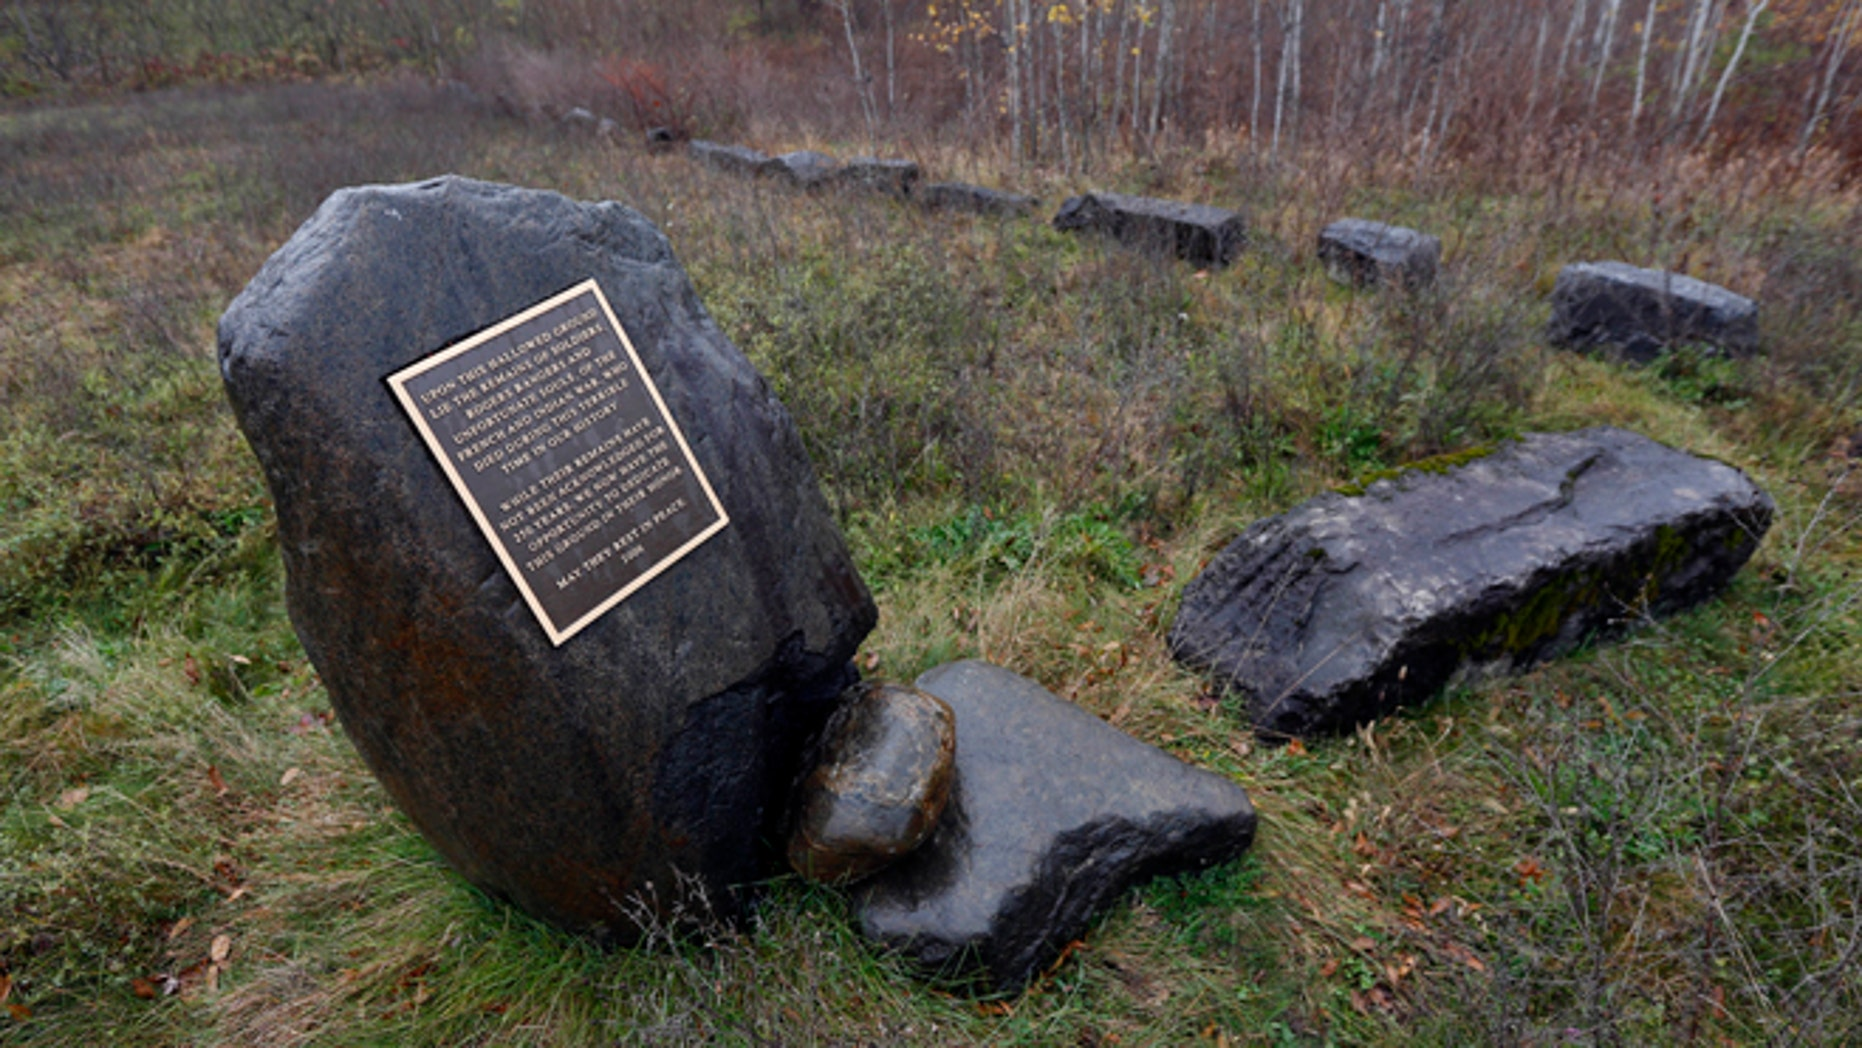 Oct. 29: A plaque remembers those buried in a Colonial-era cemetery on Rogers Island in Fort Edward, N.Y. The cemetery could hold the remains of hundreds of people, including some of the famous frontier fighters known as Rogers' Rangers.